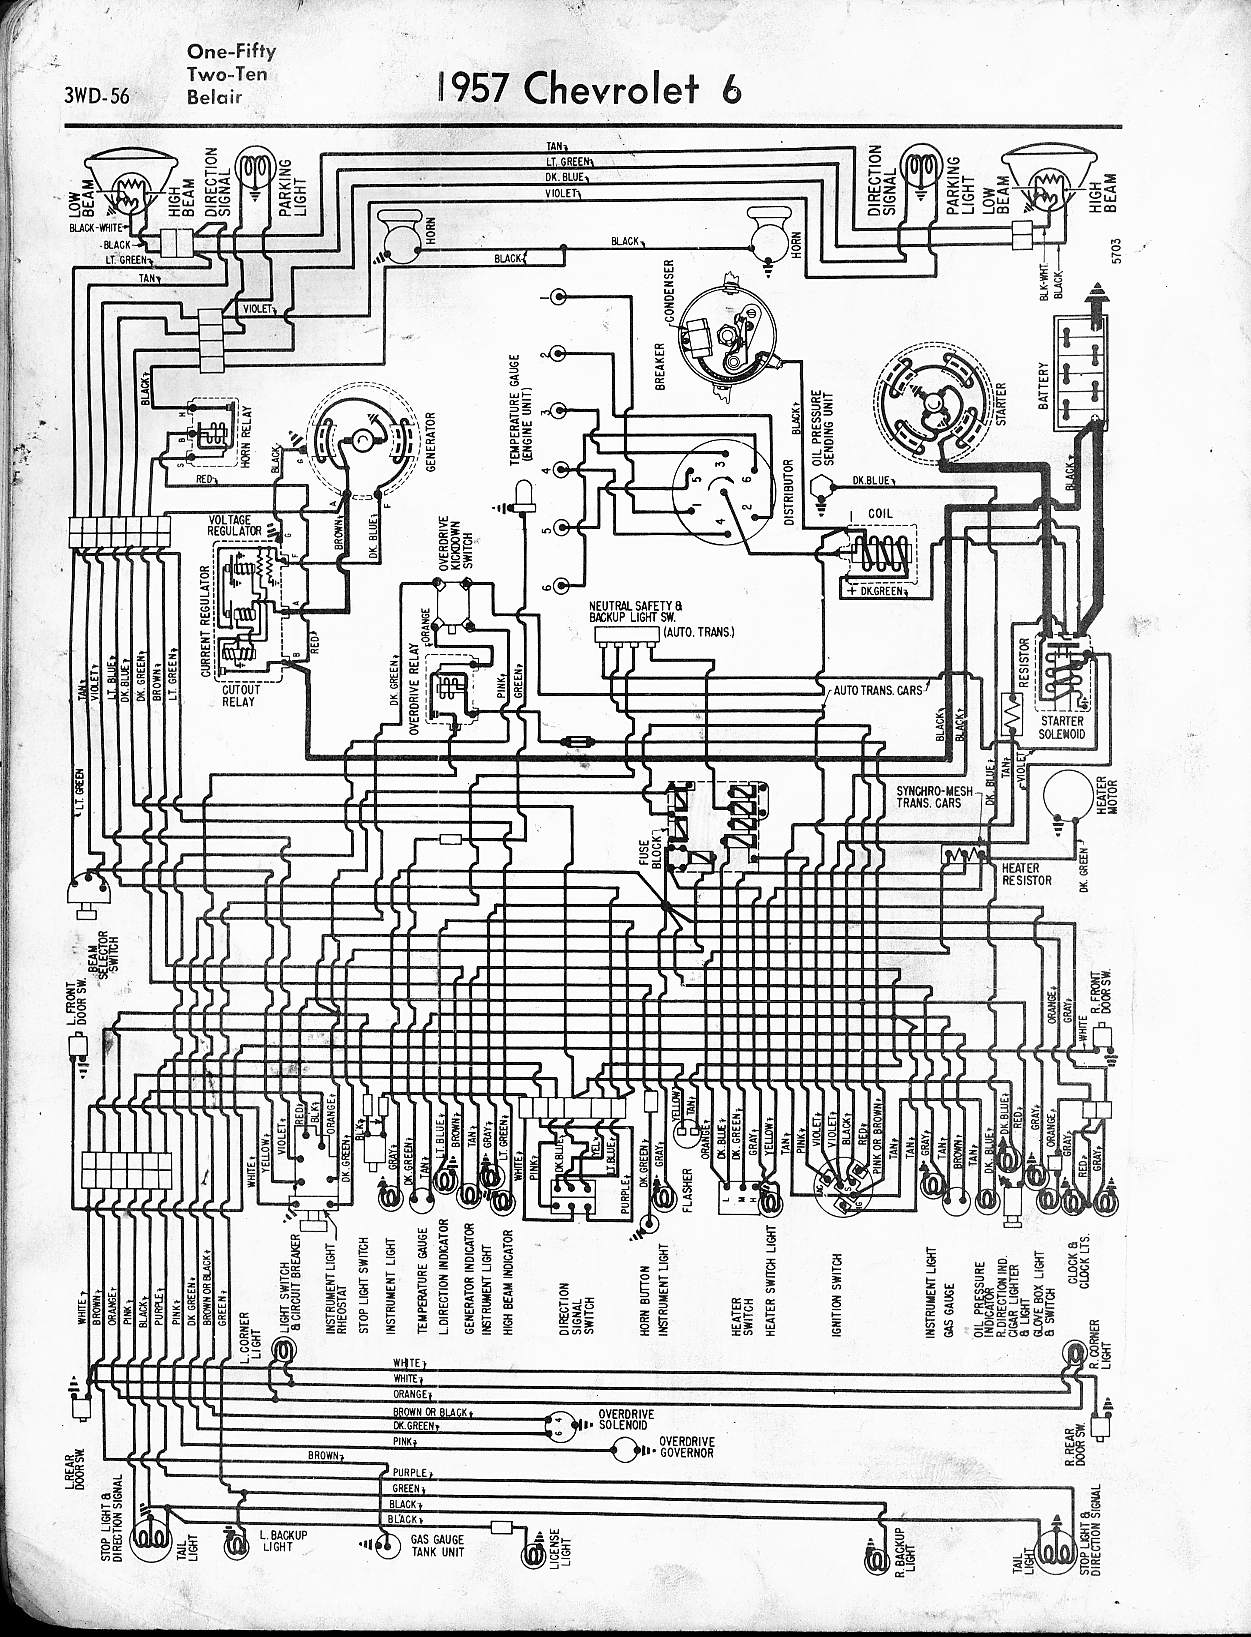 Wiring Diagram 1959 Chrysler Windsor Not Lossing 57 Bel Air Ignition Switch Free Engine 1955 300